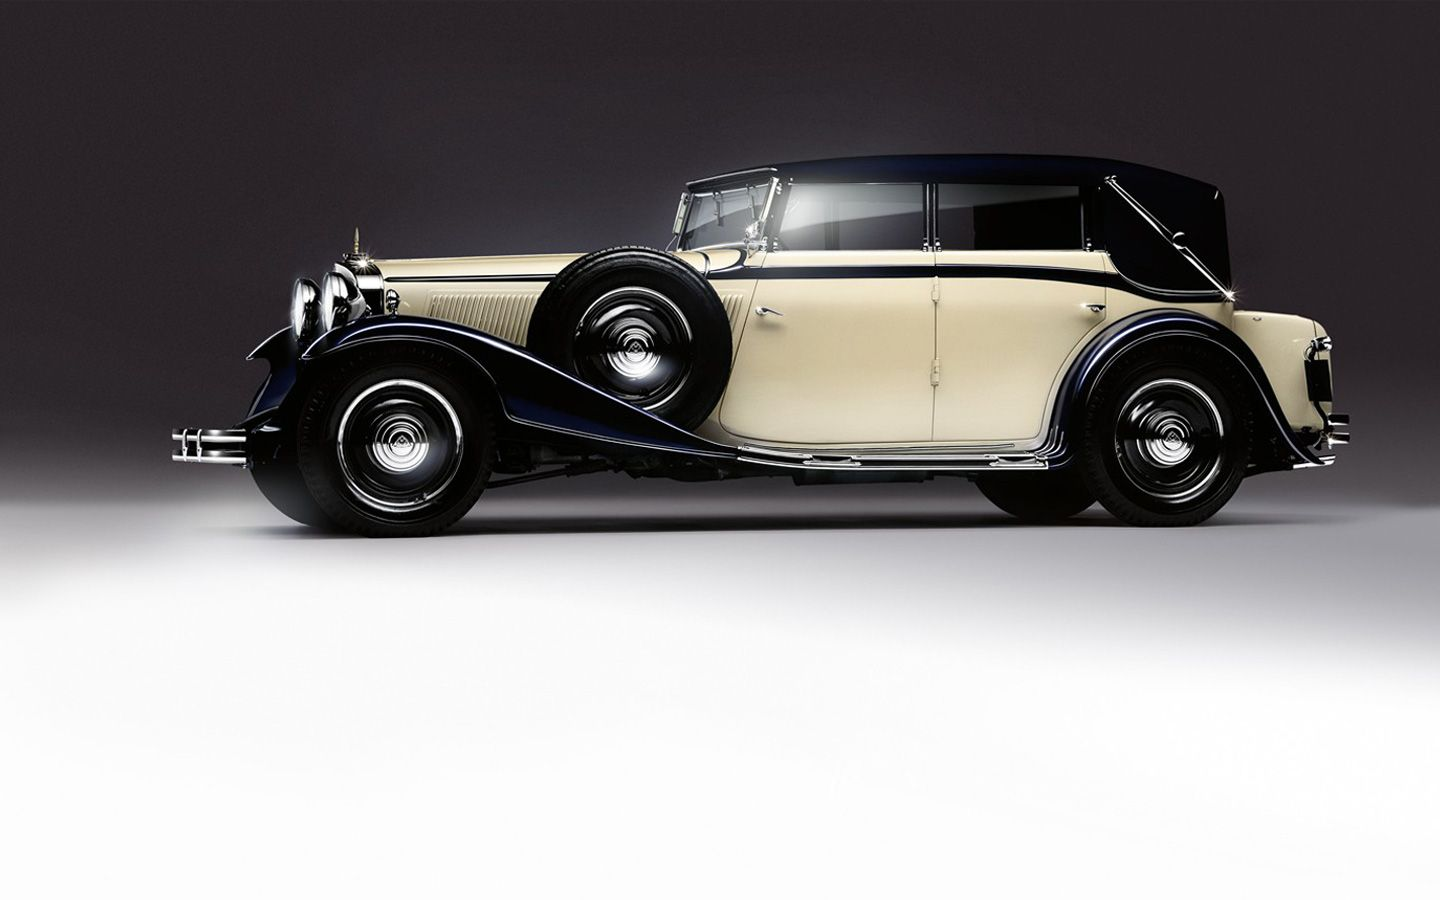 Classic black and white car